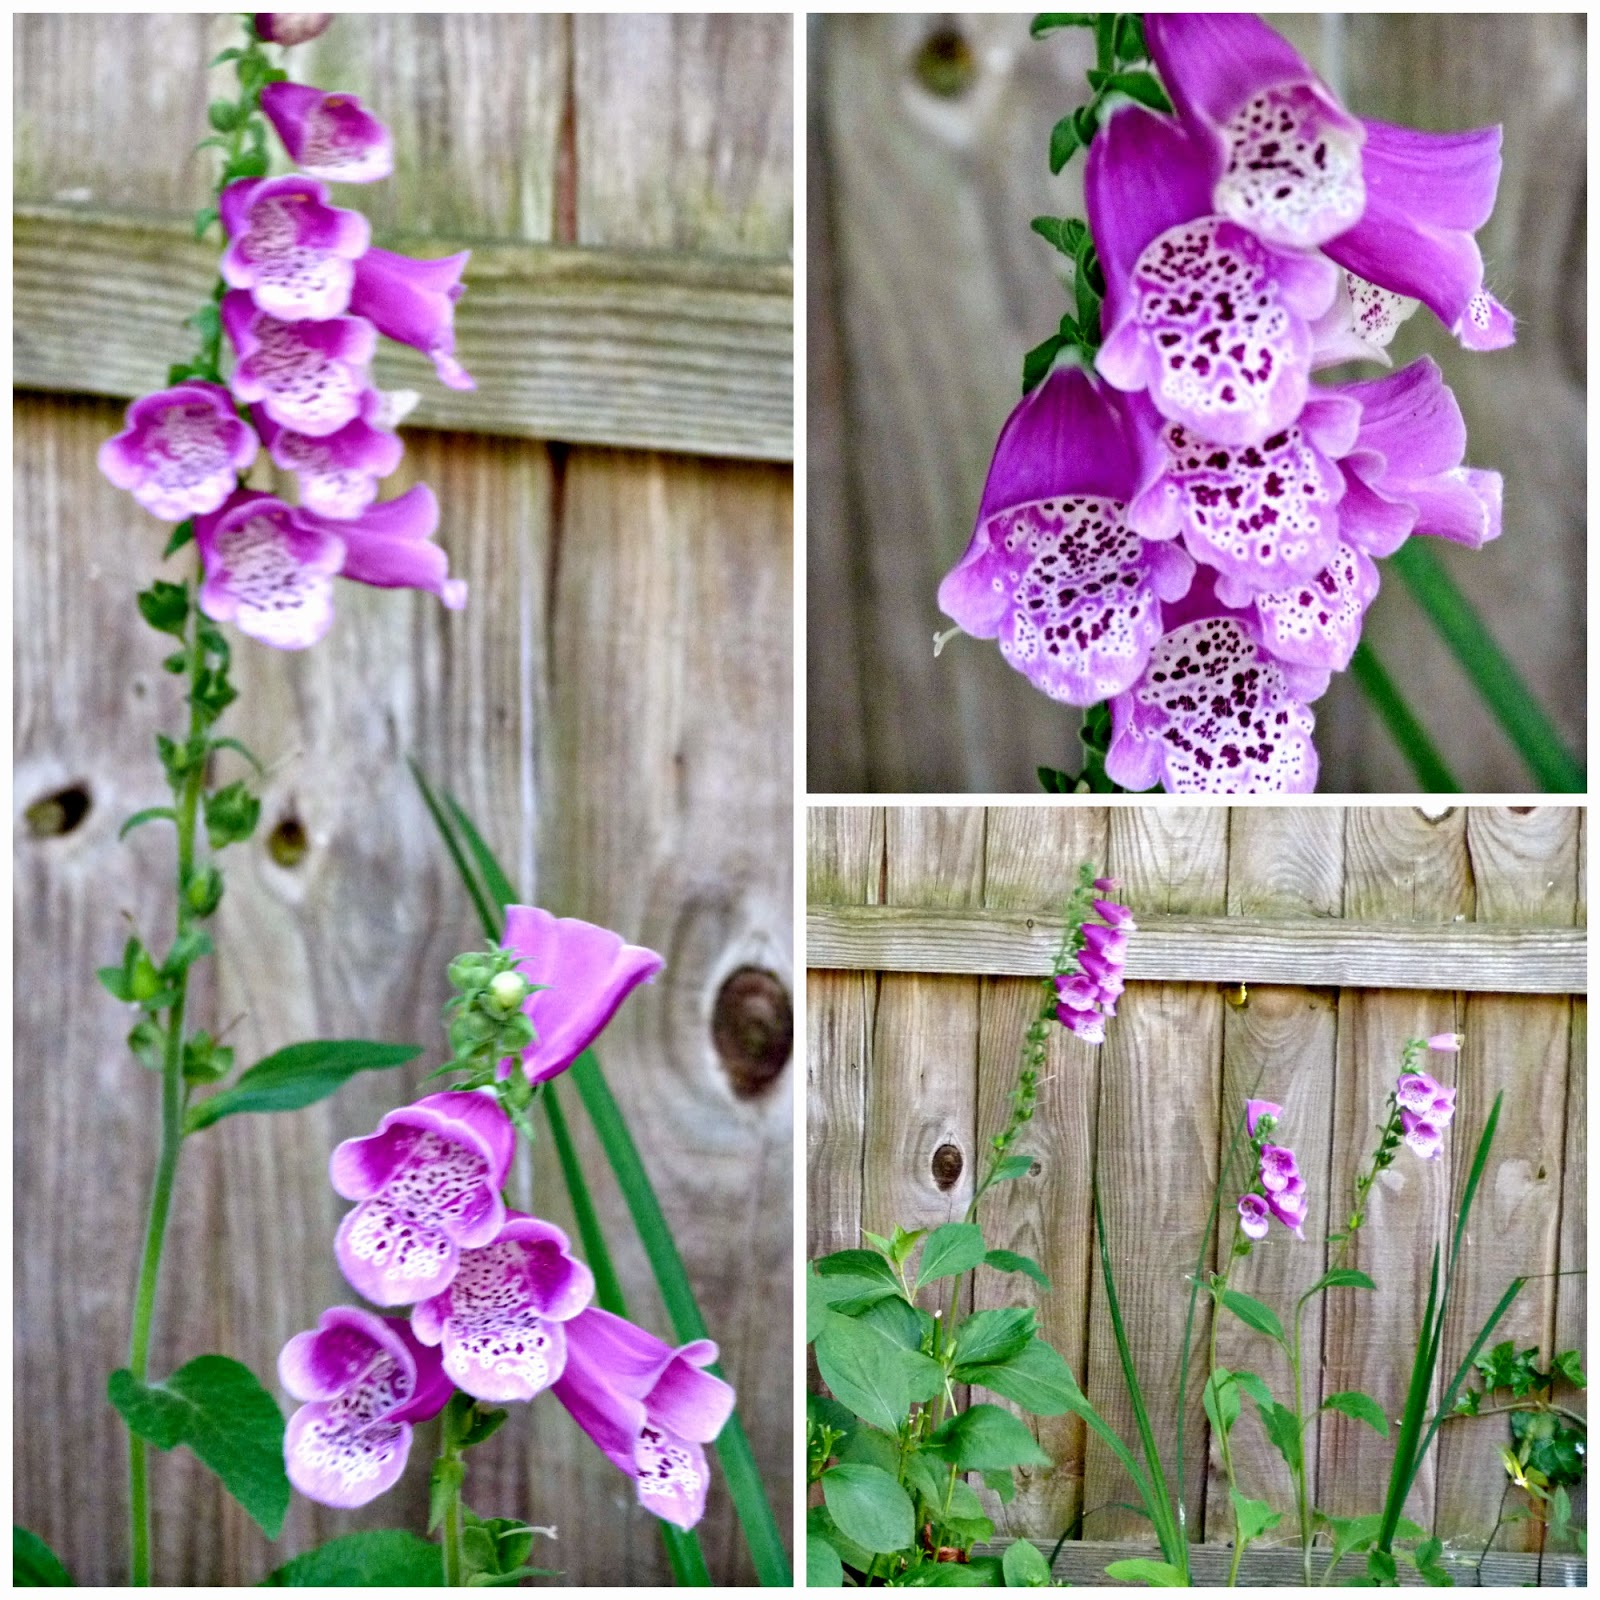 Foxgloves from Plant Me Now